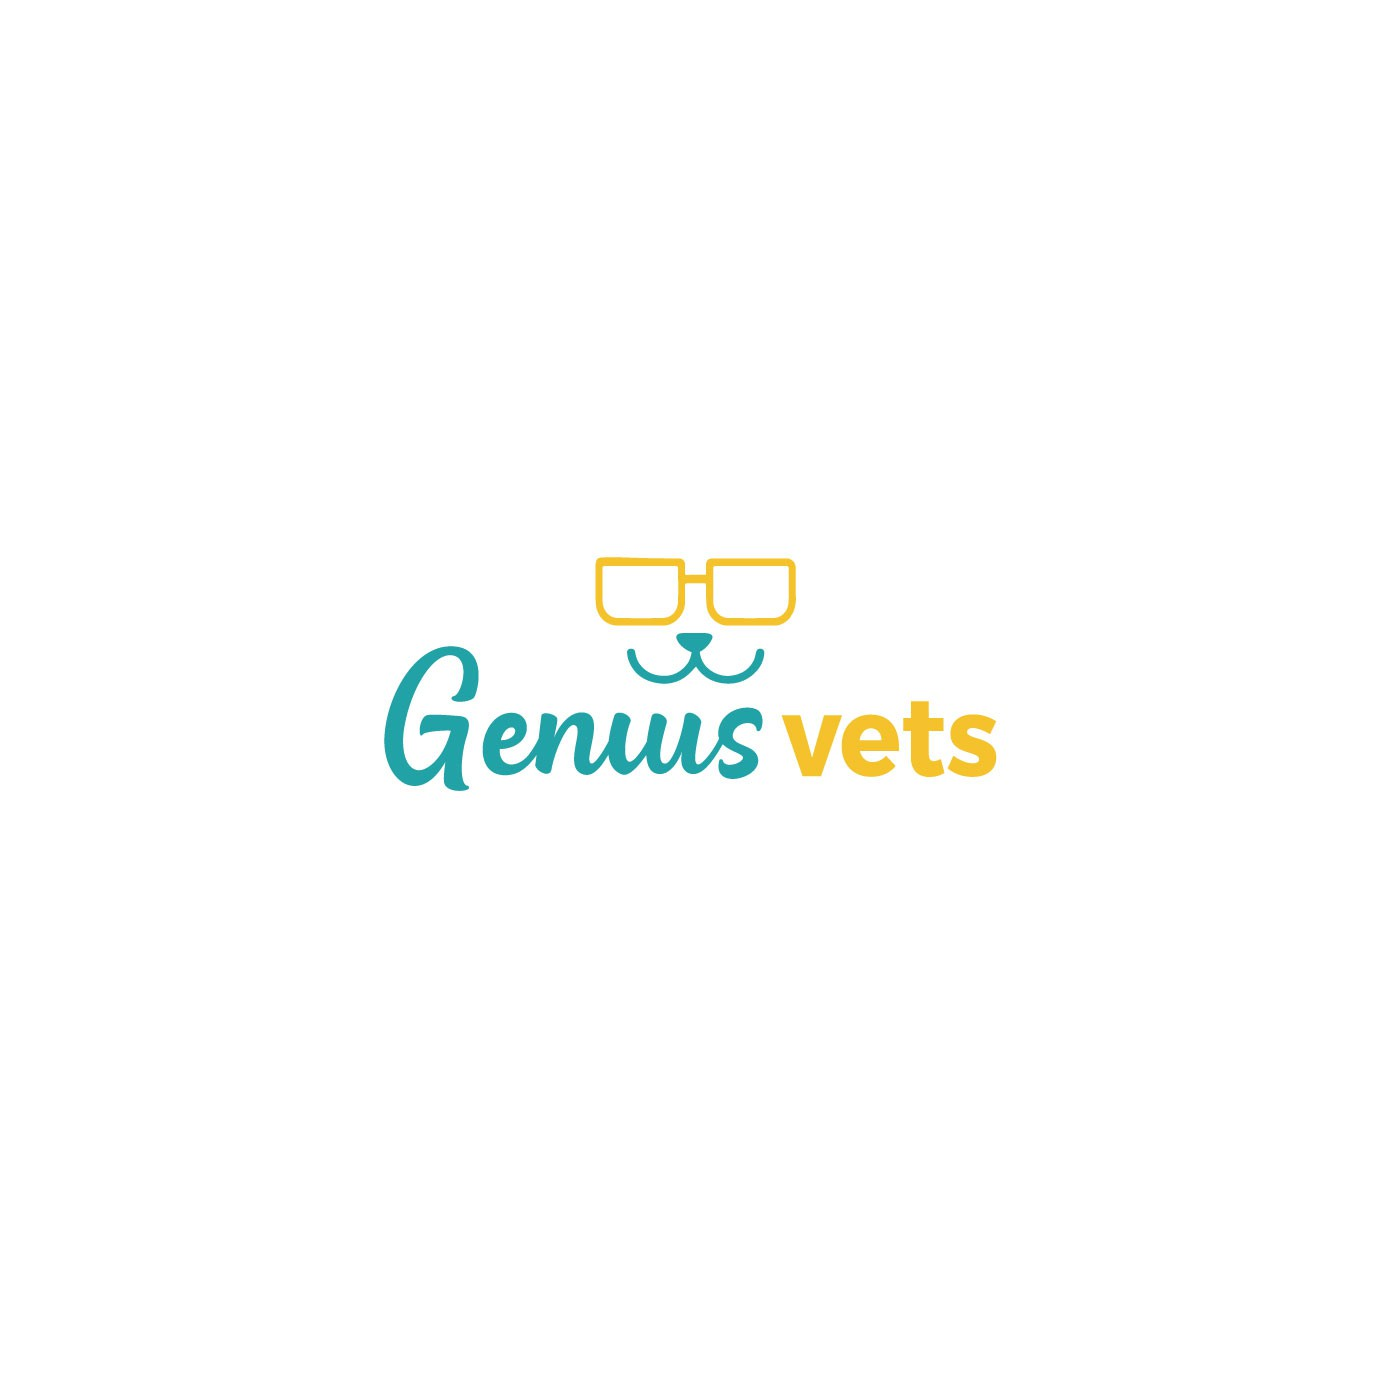 New logo for a pet-focused online company